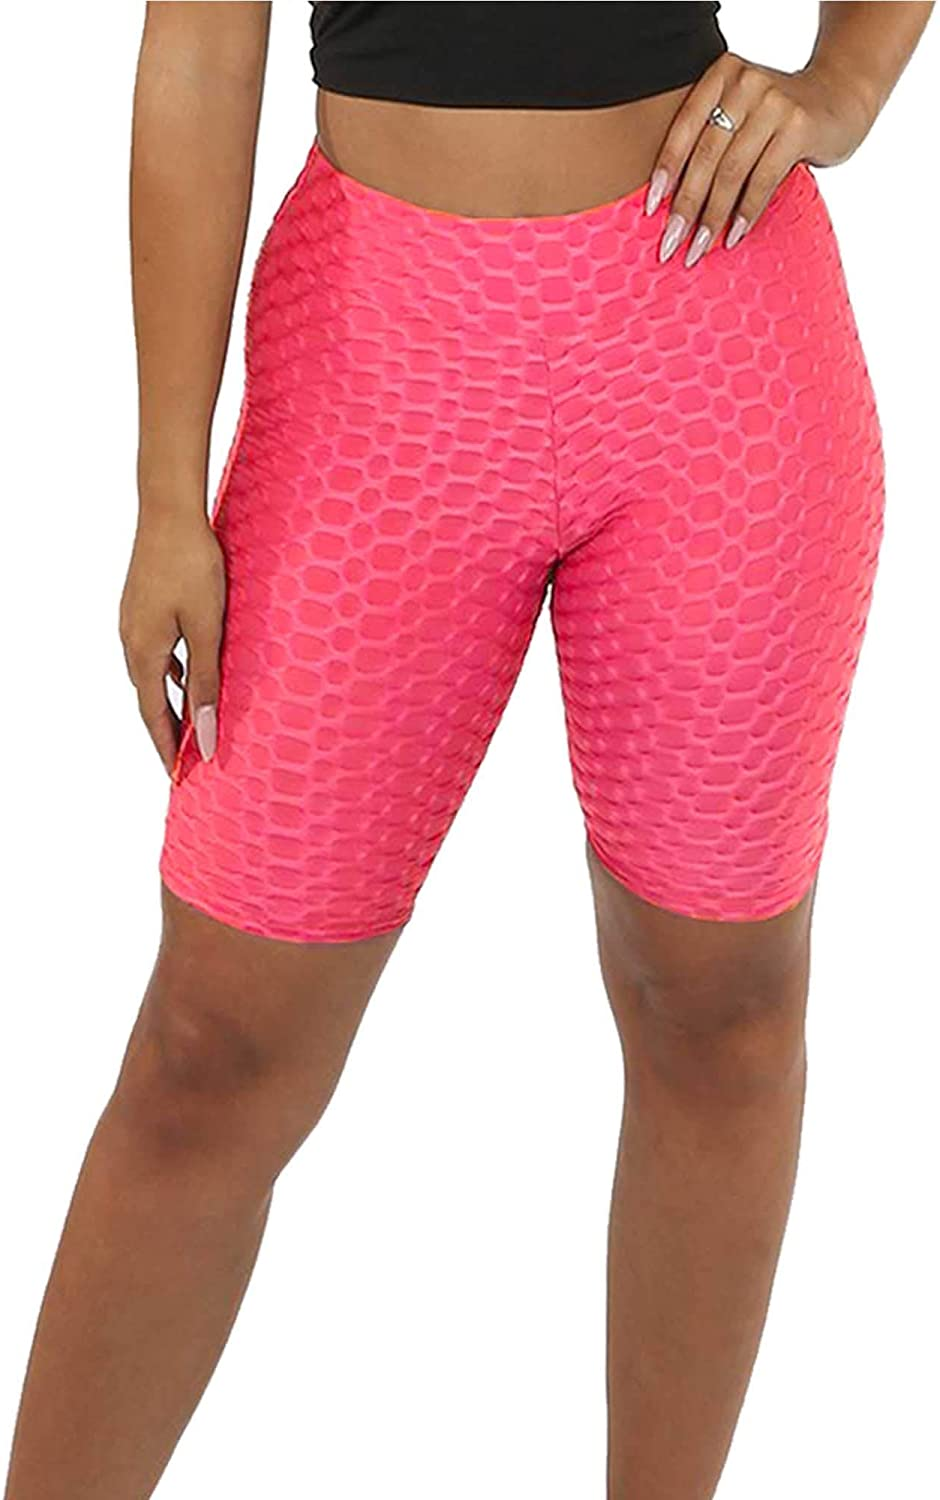 Xpose Ladies Anti Cellulite Body Enhancing Body Shaping Textured High Waist Womens Fitness Yoga Gym Shorts Black Coral Grey Pink Blue White 8 10 12 14